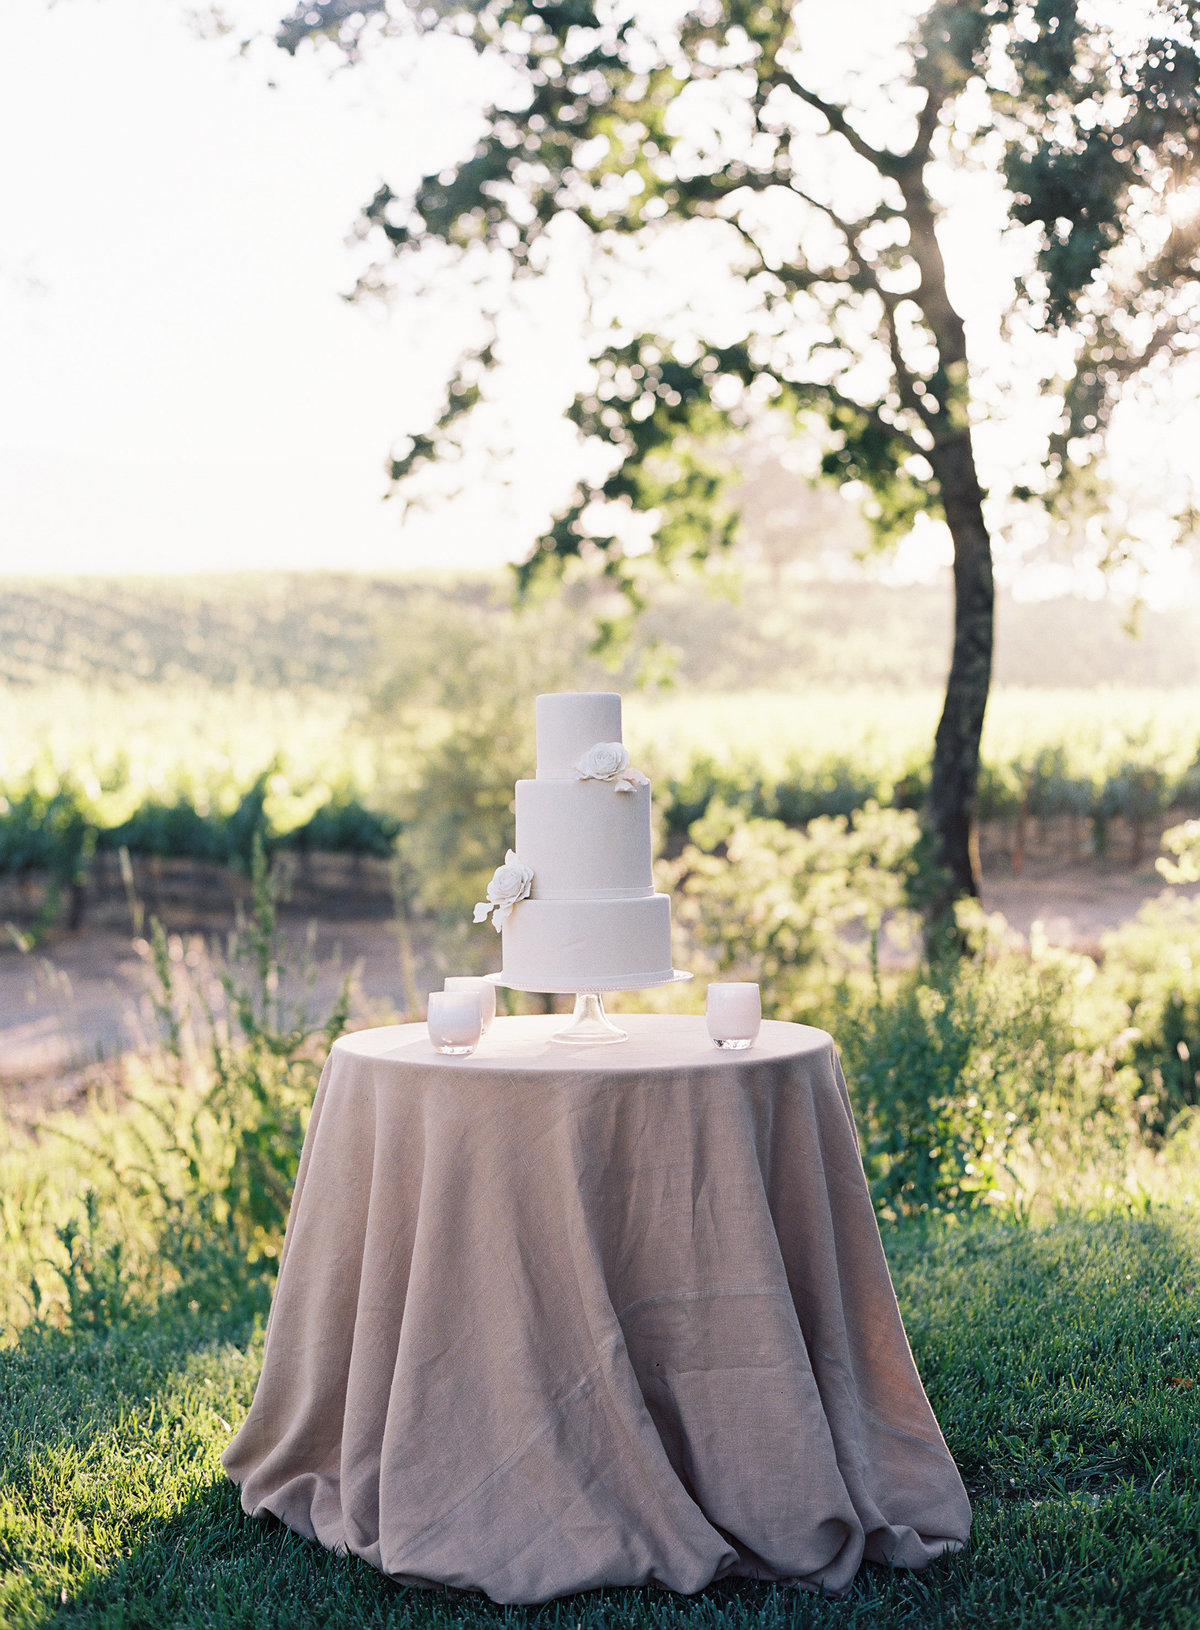 Cake for wedding by Jenny Schneider Events in Napa Valley, California. Photo by Eric Kelley Photography.